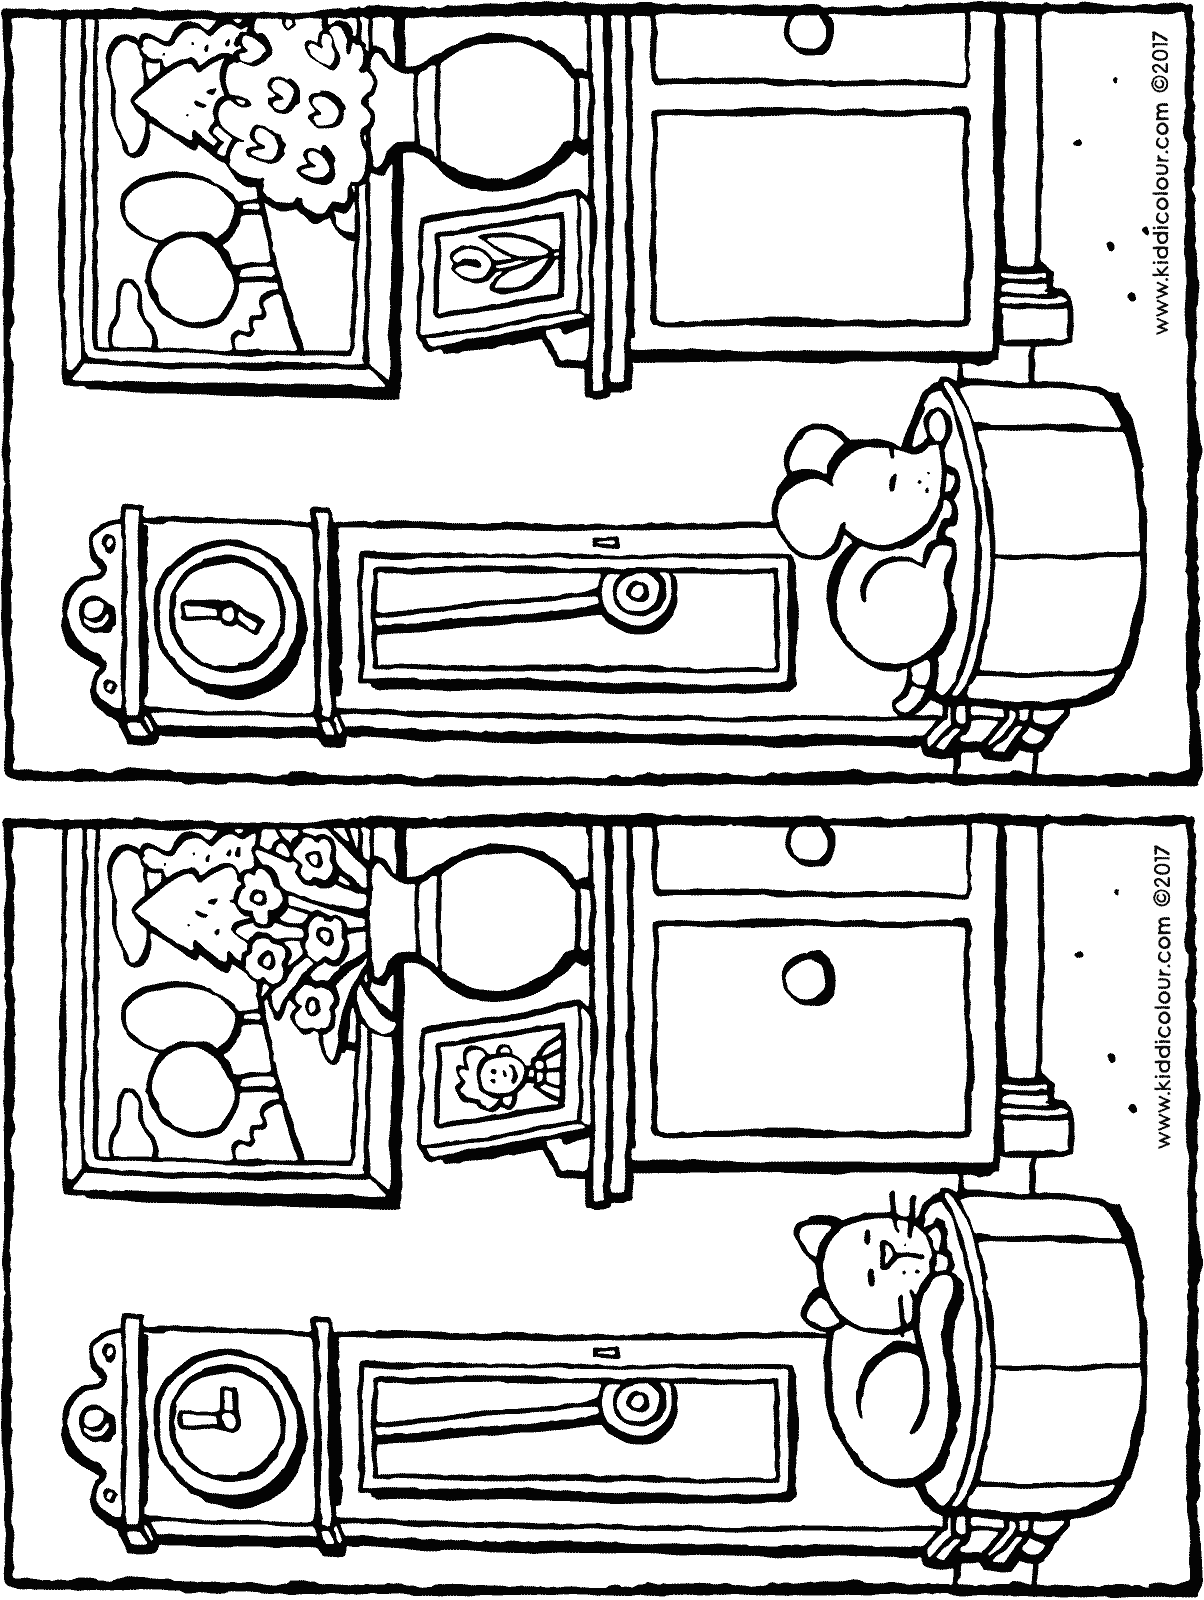 spot the 5 differences colouring page drawing picture 01H